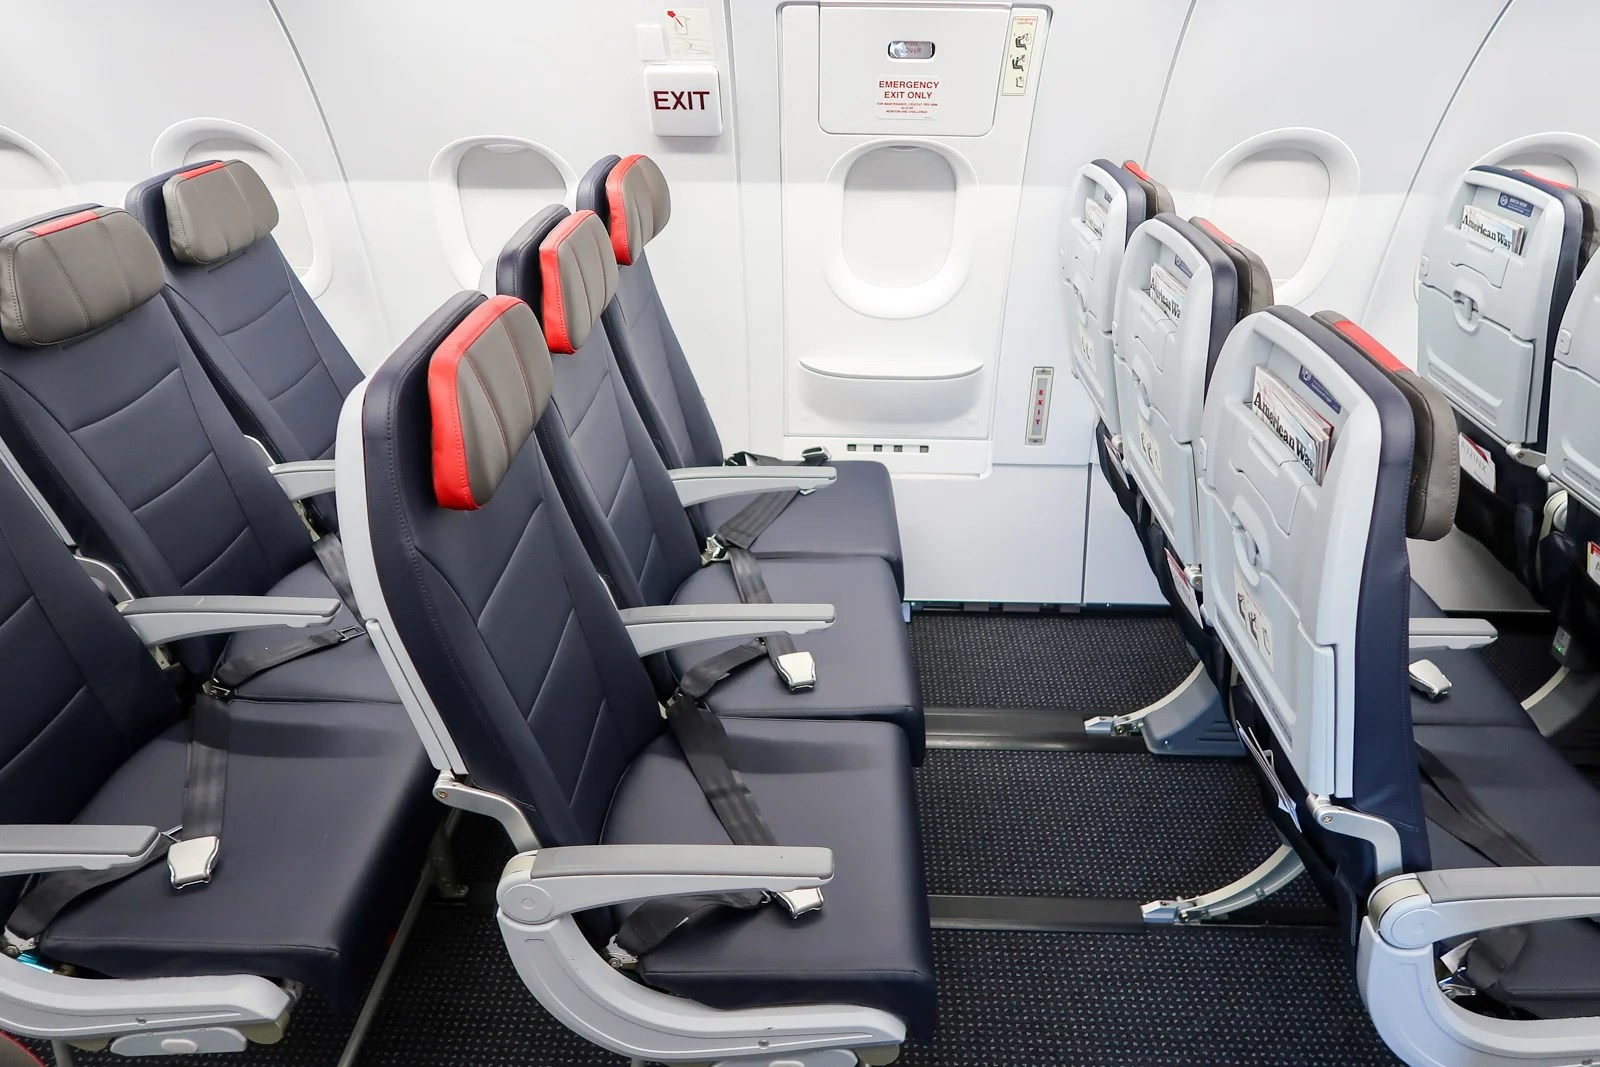 Here's Why You Might Not Be Allowed To Fly in The Exit Row